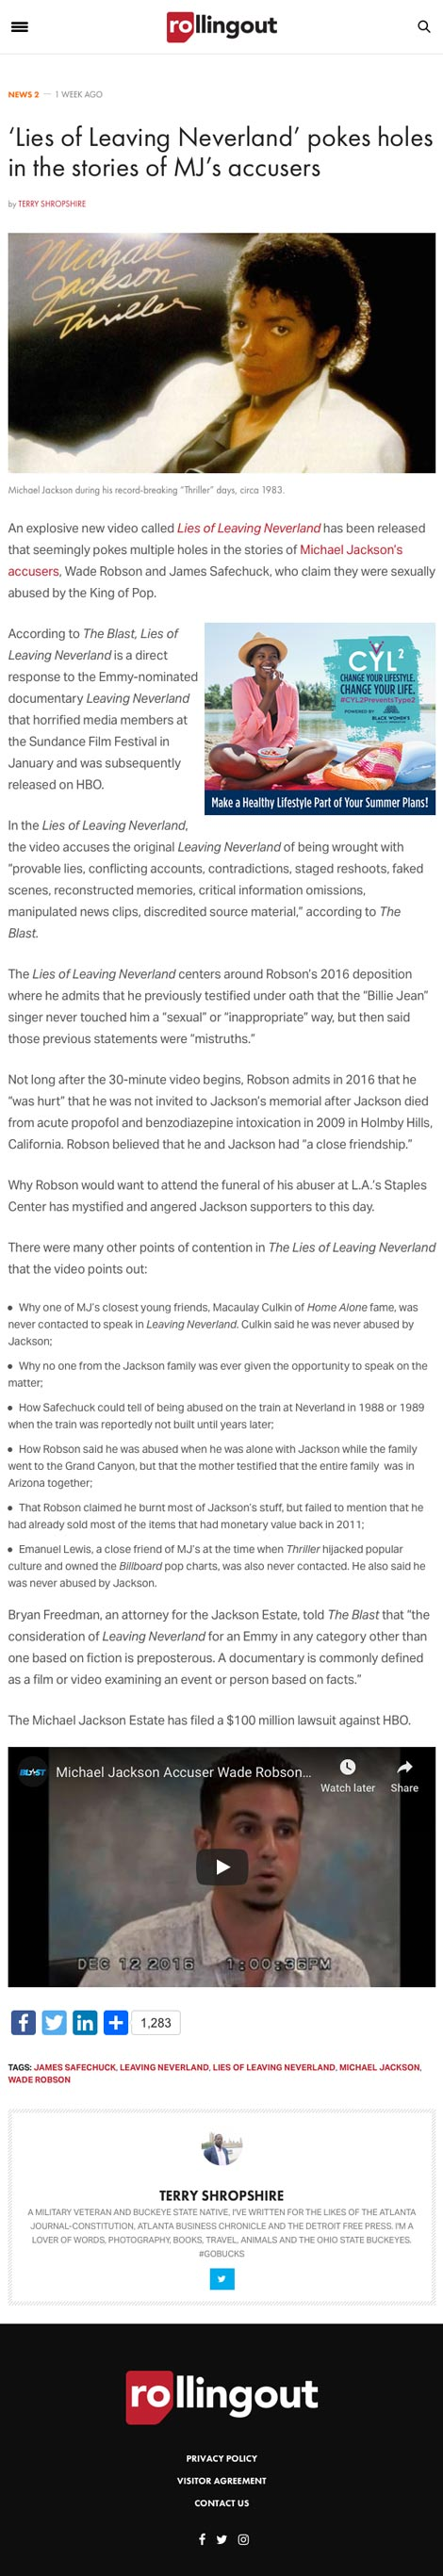 'Lies of Leaving Neverland' pokes holes in the stories of MJ's accusers - article by RollingOut.com